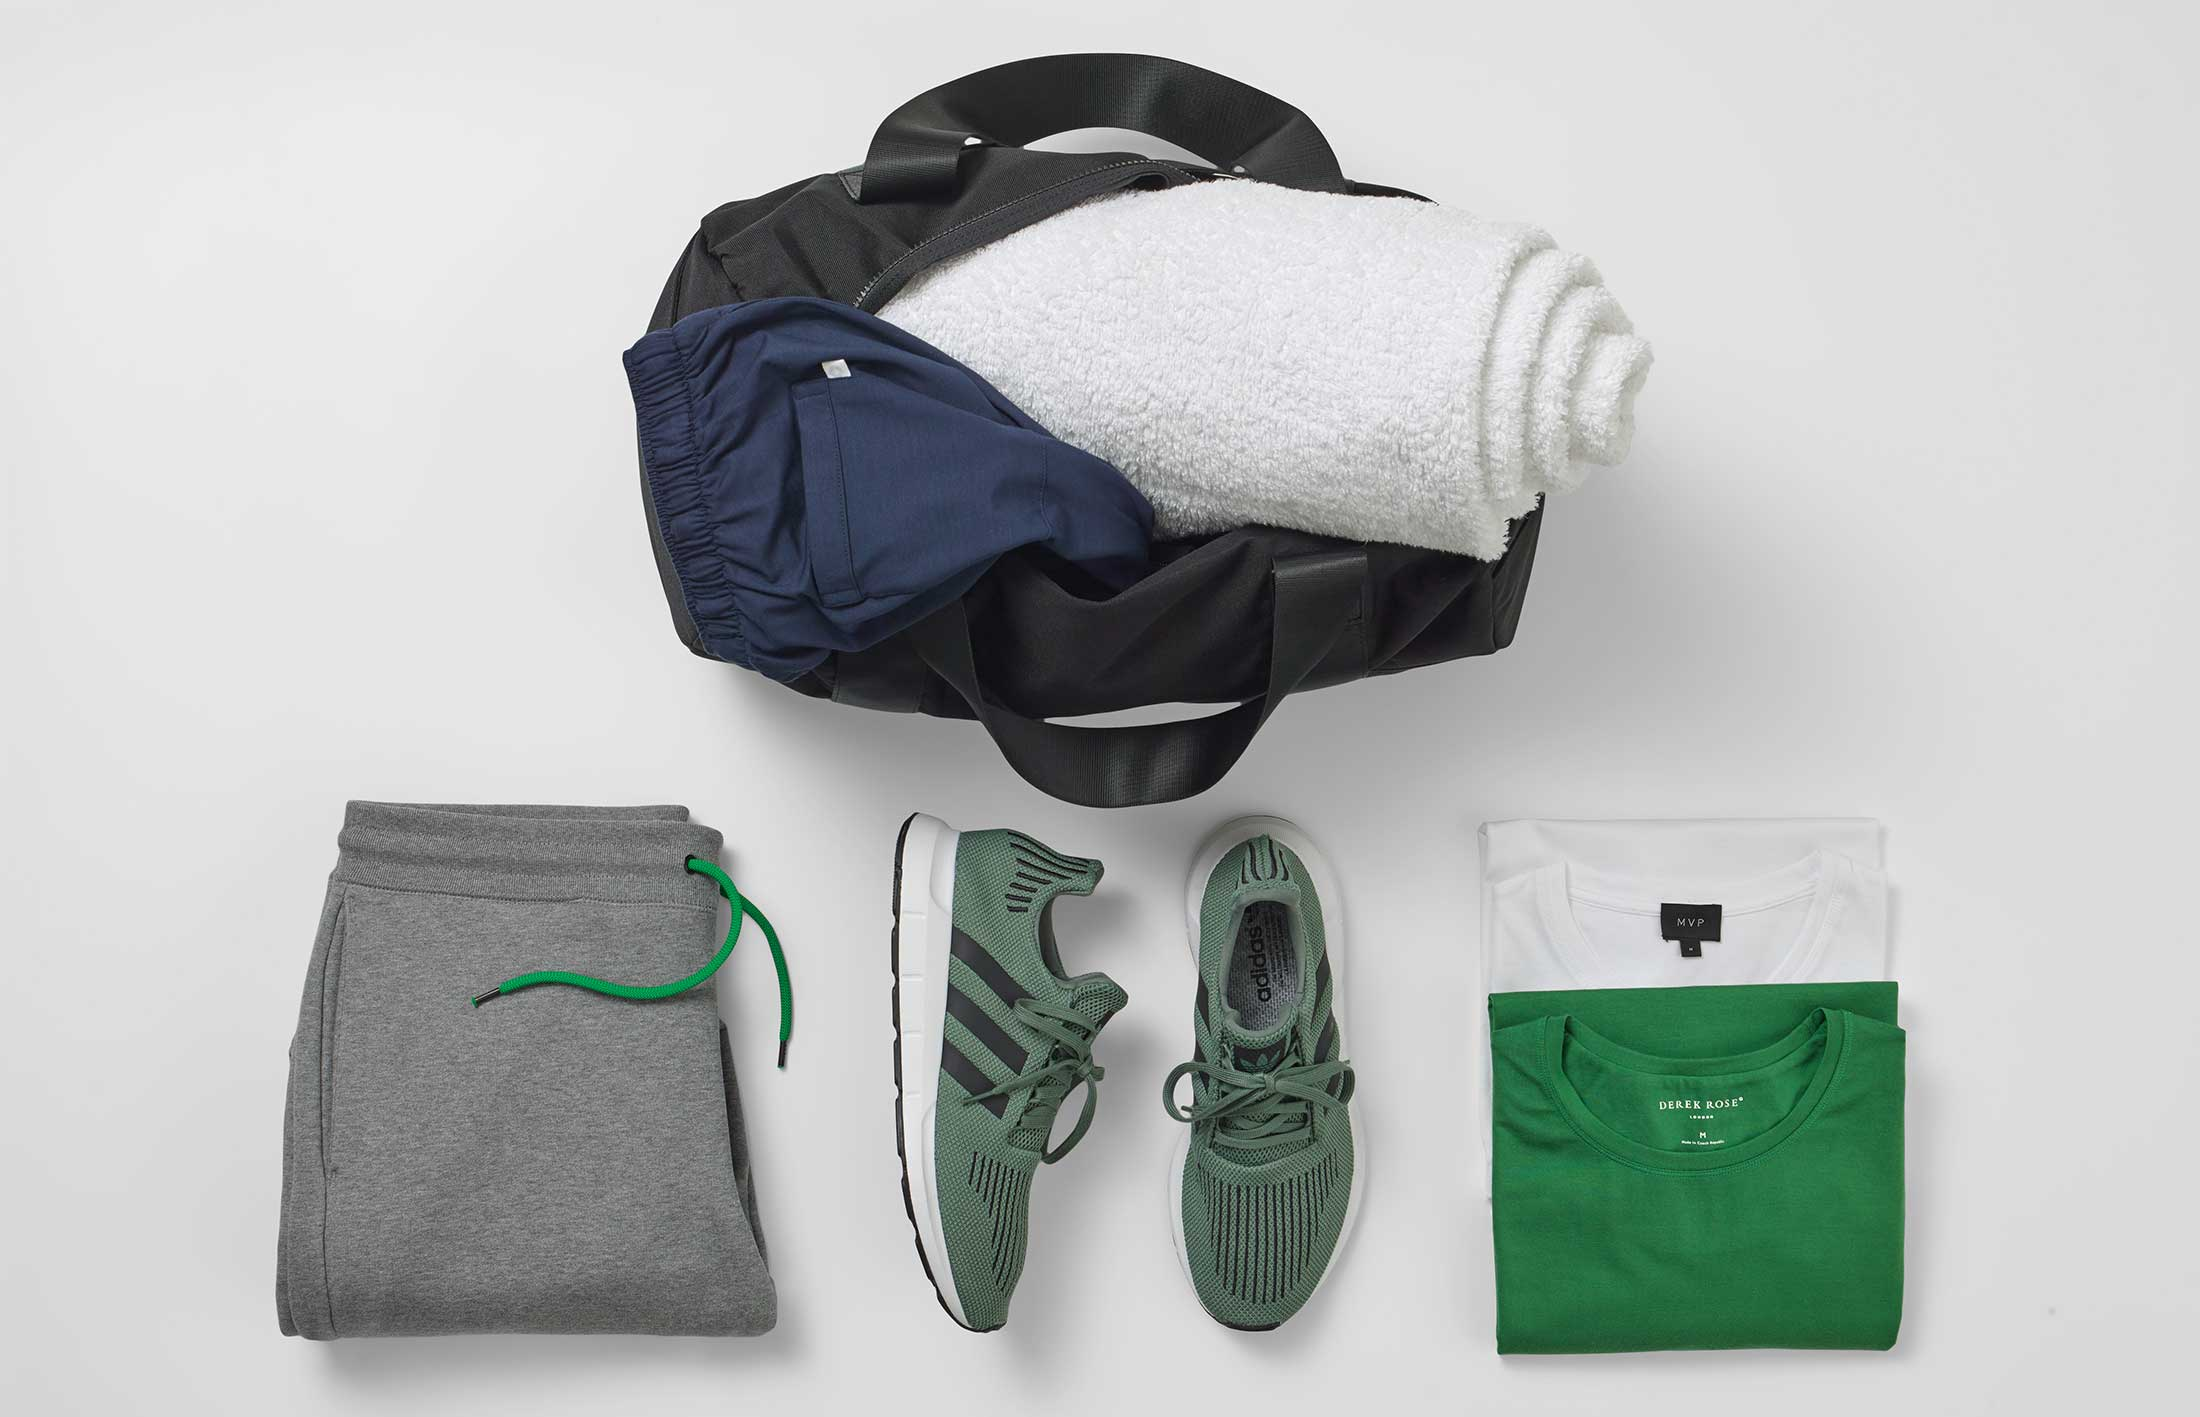 What to wear for exercise